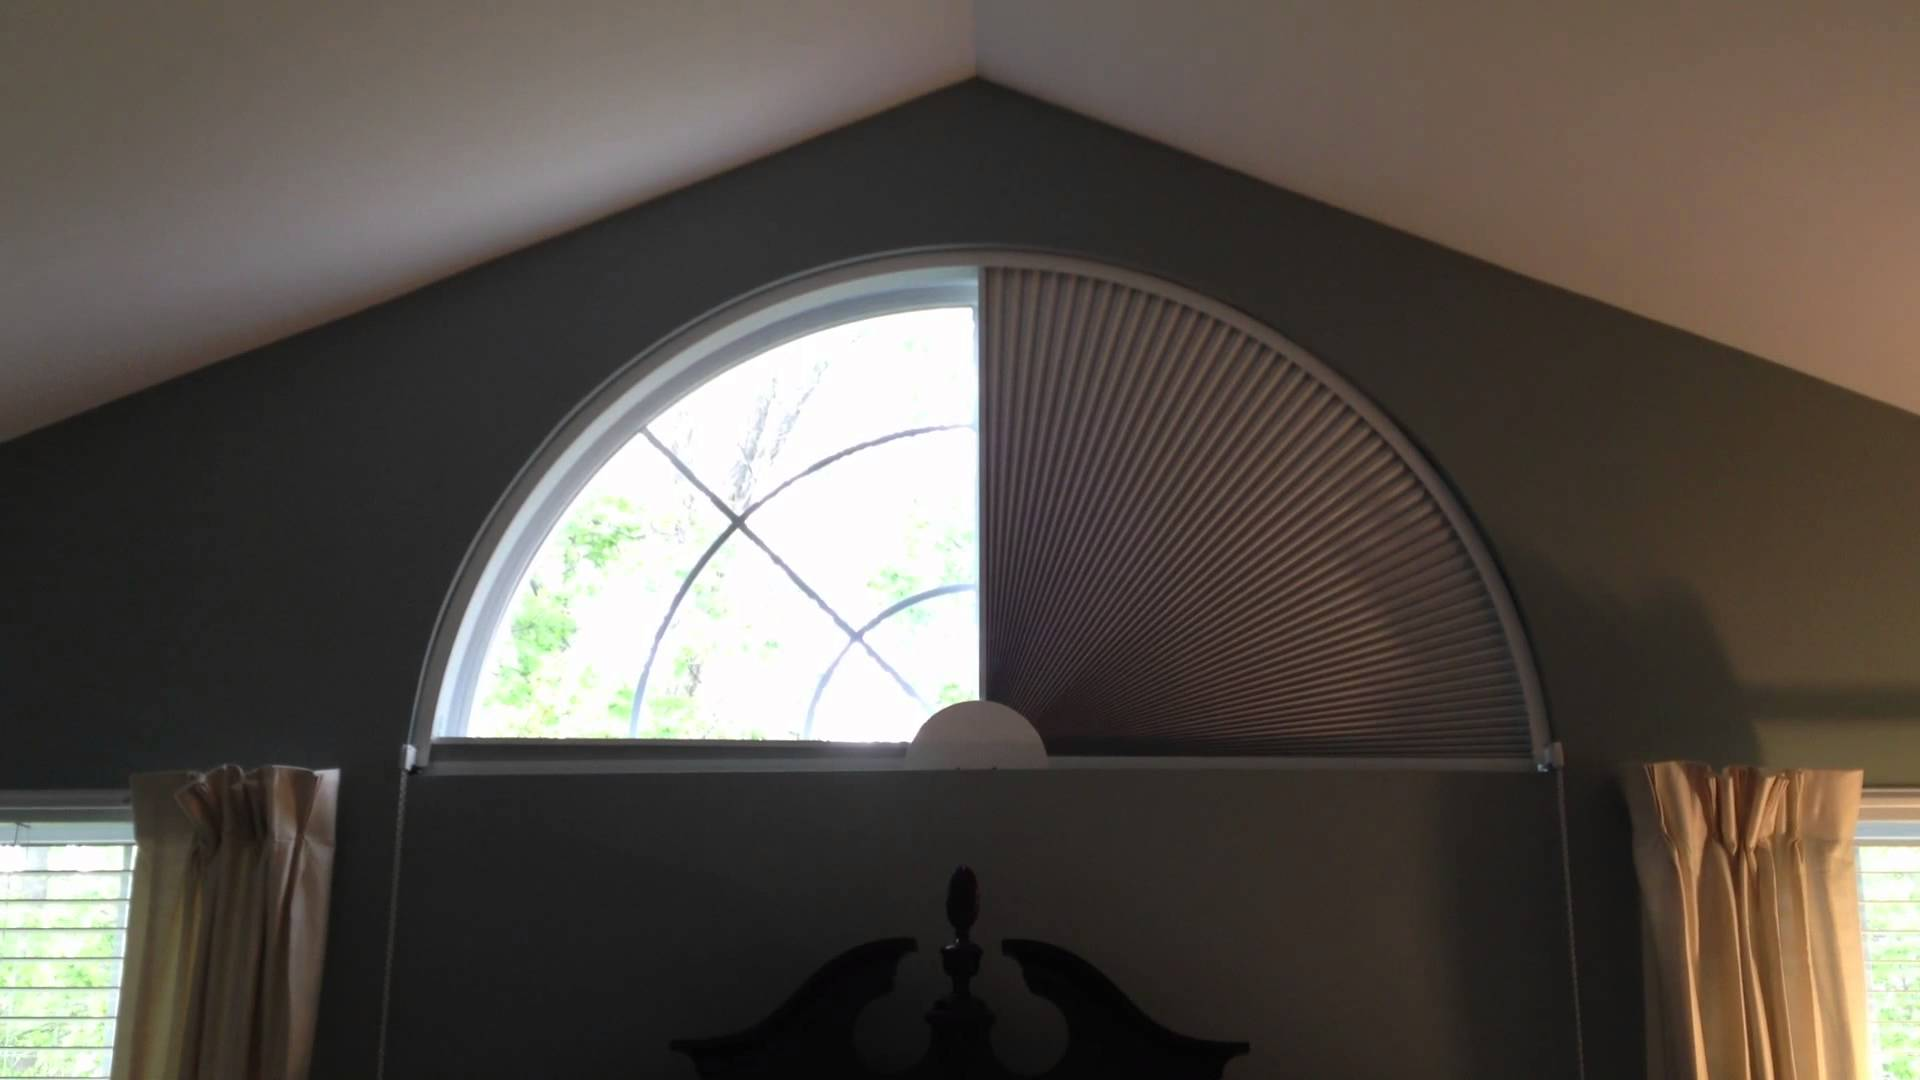 Photos of Movable Blind for Arch Shaped Window by Blind Builders, Inc. Feasterville,  PA arch window shade